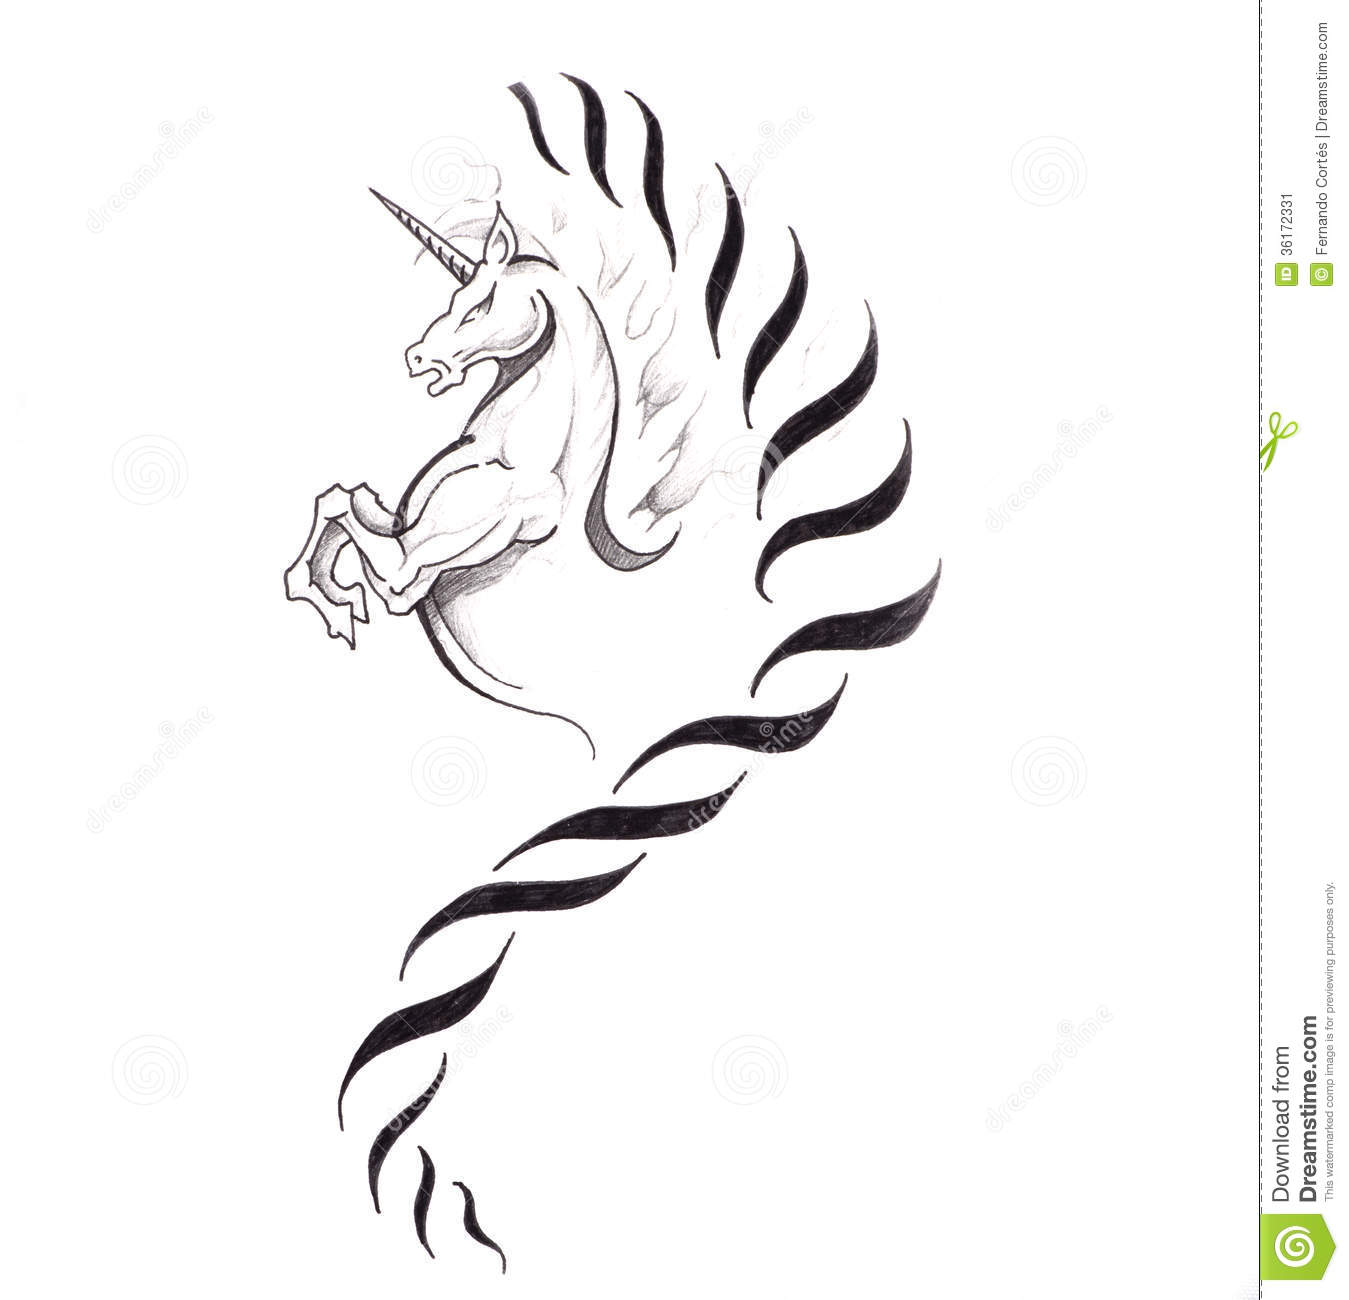 Sketch Of Tattoo Art Horse Unicorn Stock Image Image